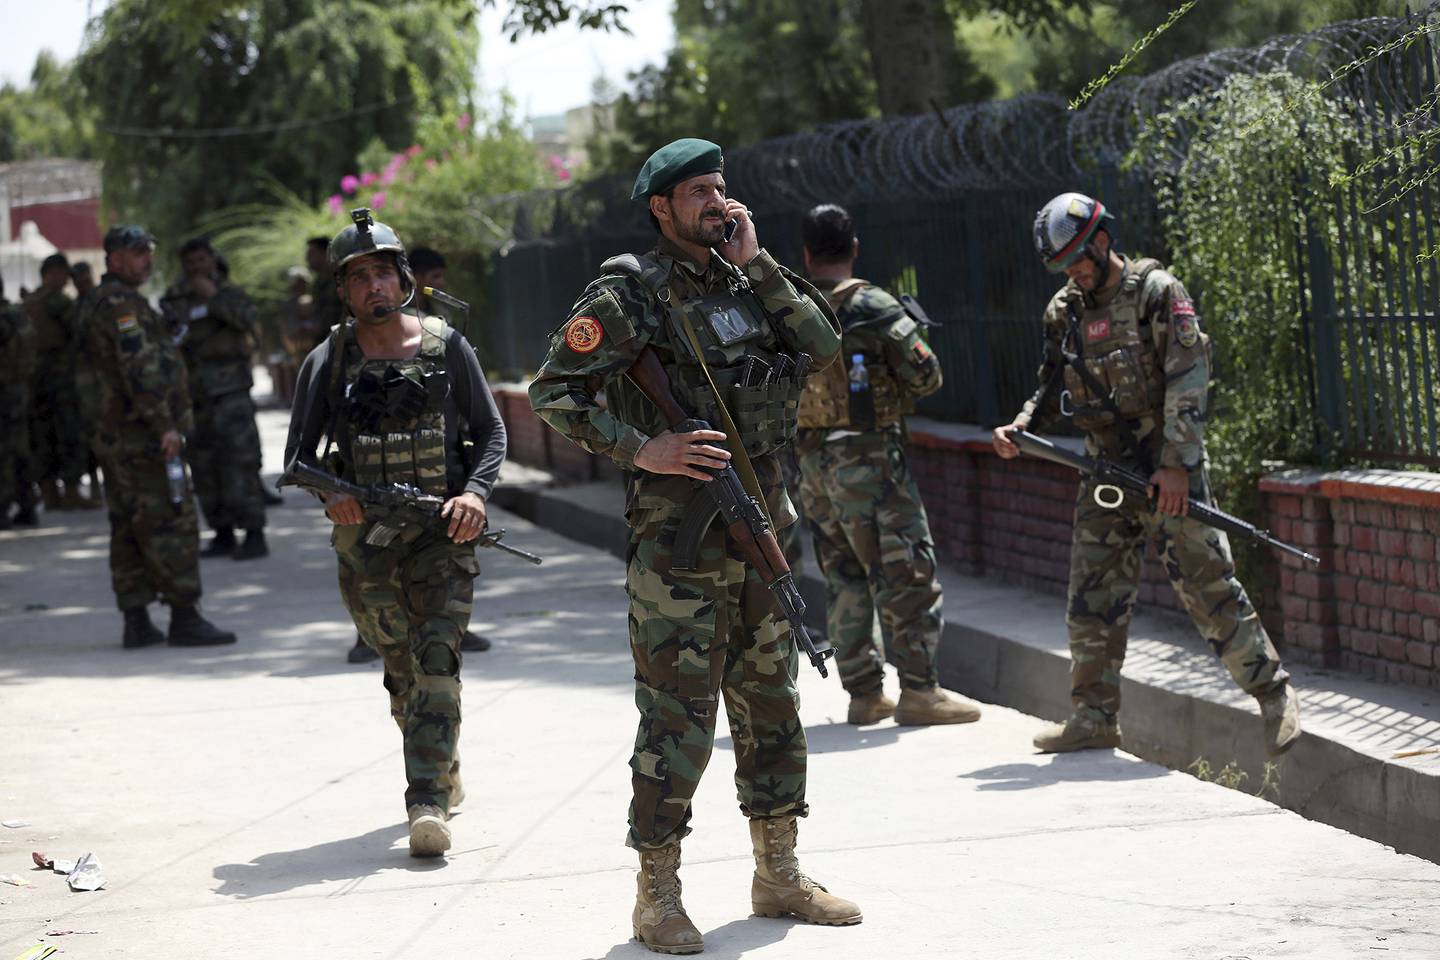 Afghan security personnel gather near a prison after an attack in the city of Jalalabad, east of Kabul, Afghanistan, Monday, Aug. 3, 2020.